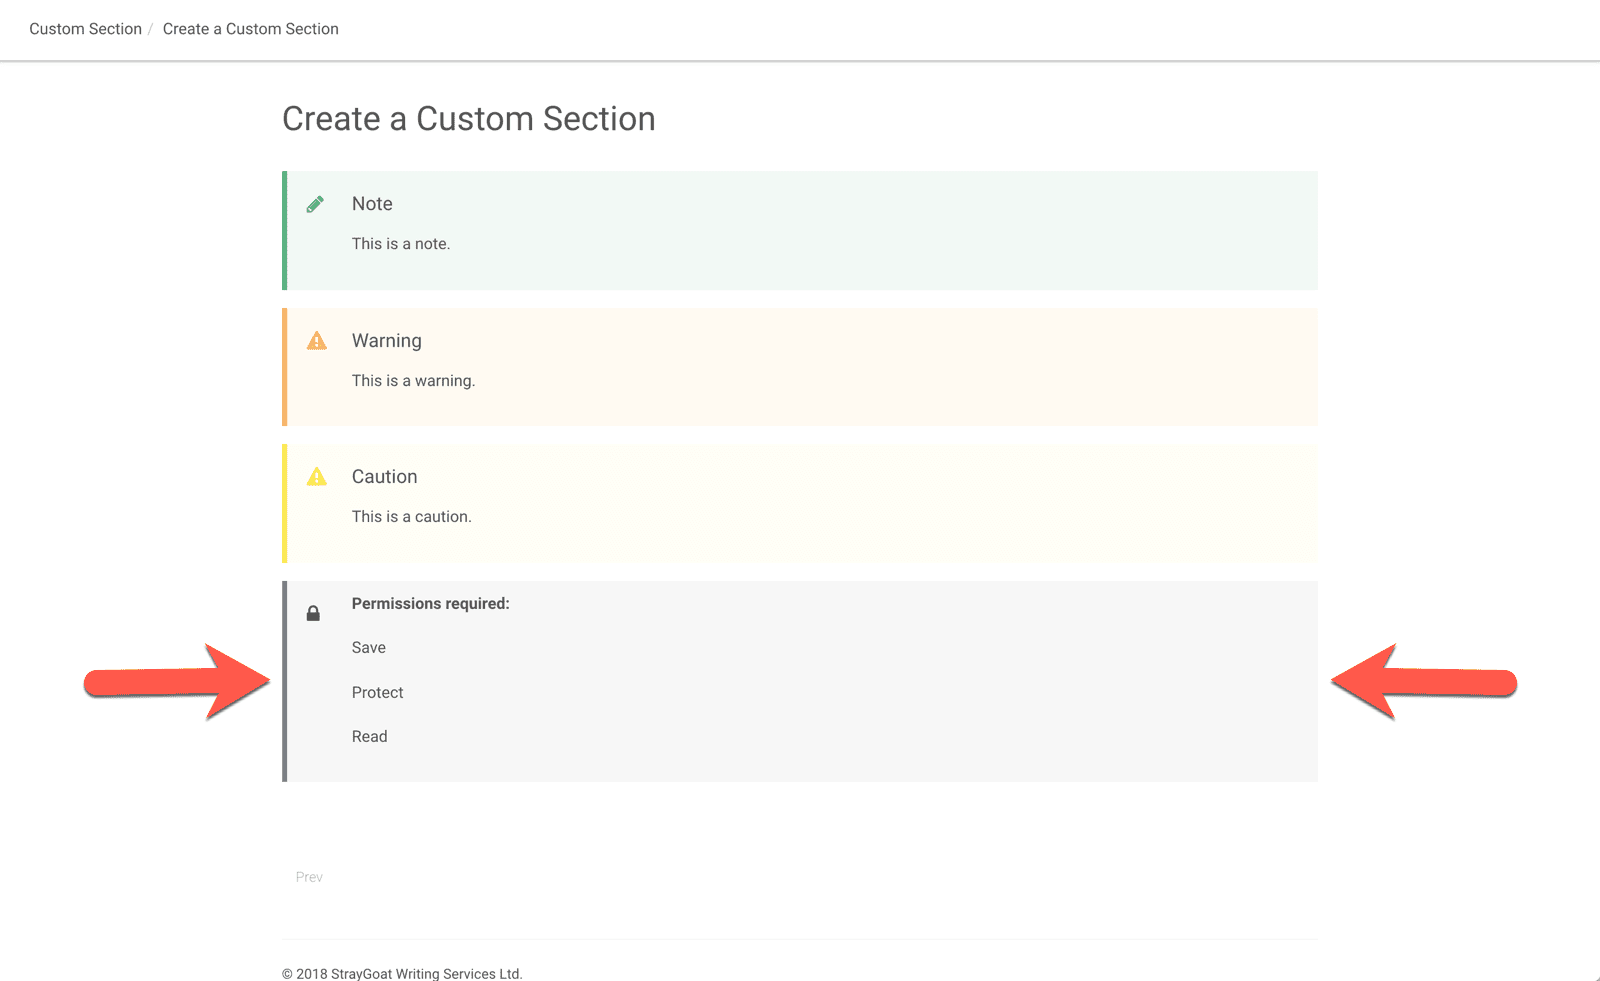 new custom section added to topic